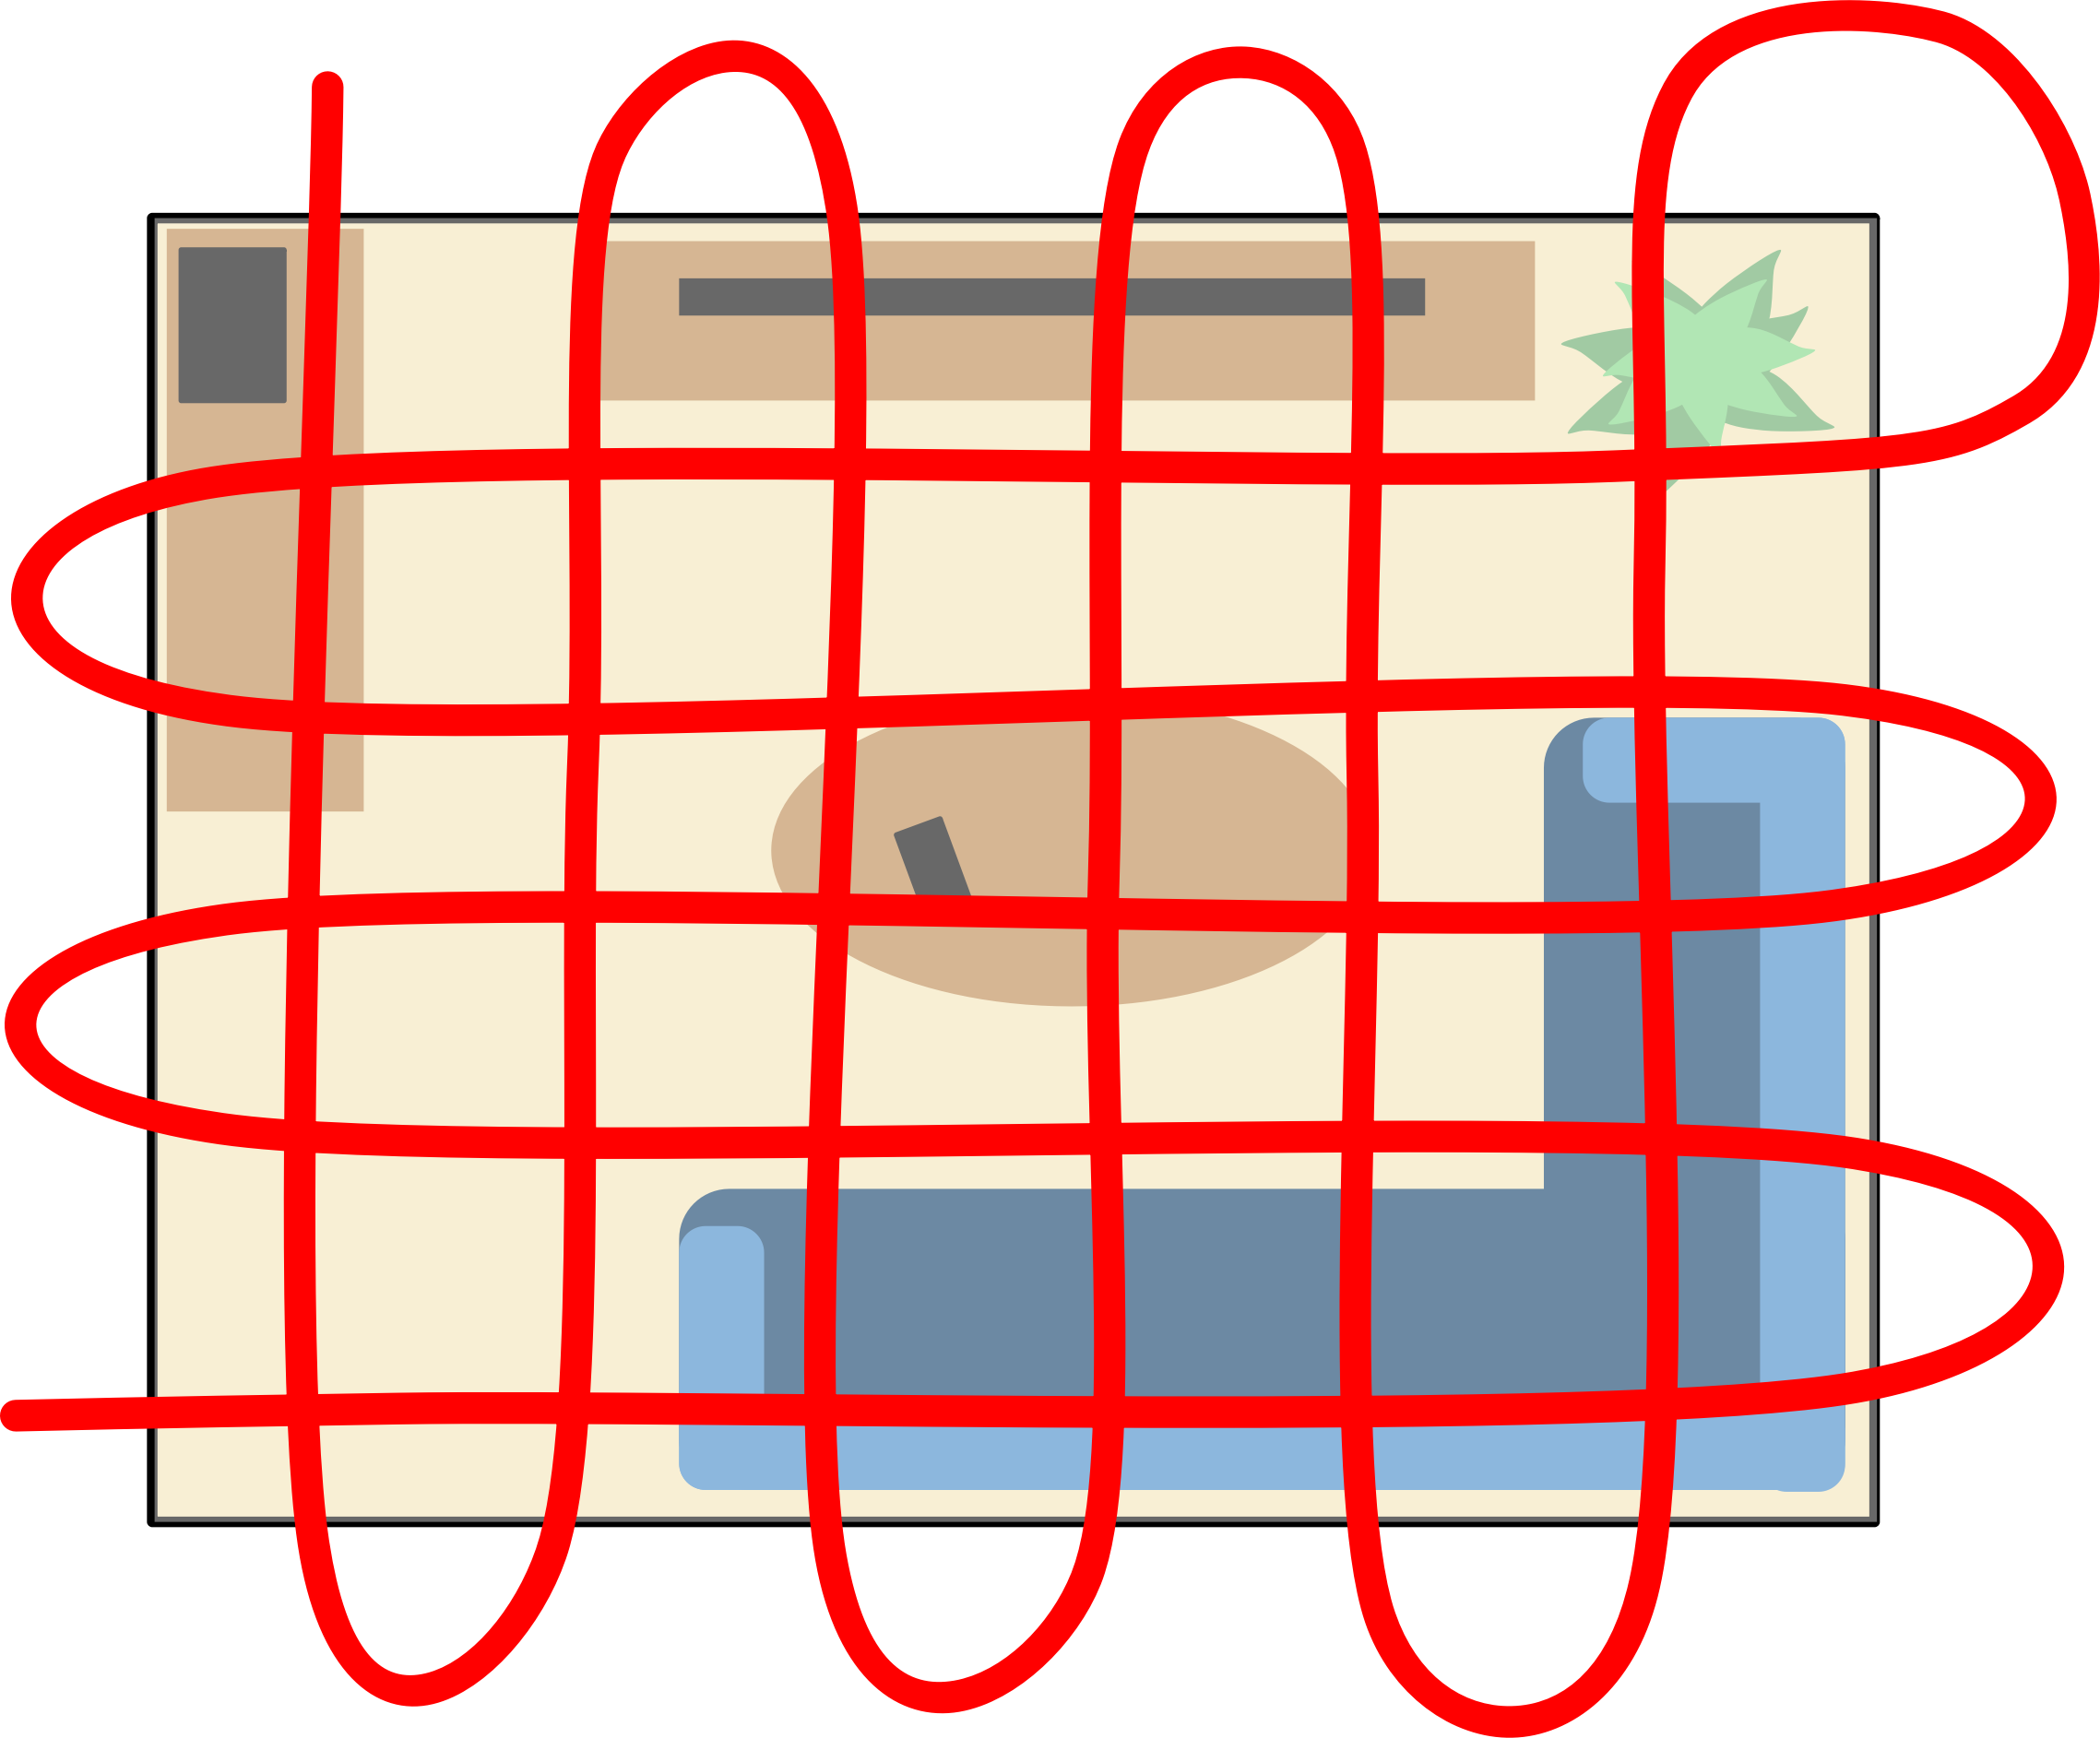 Grid search pattern big. Evidence clipart crime evidence